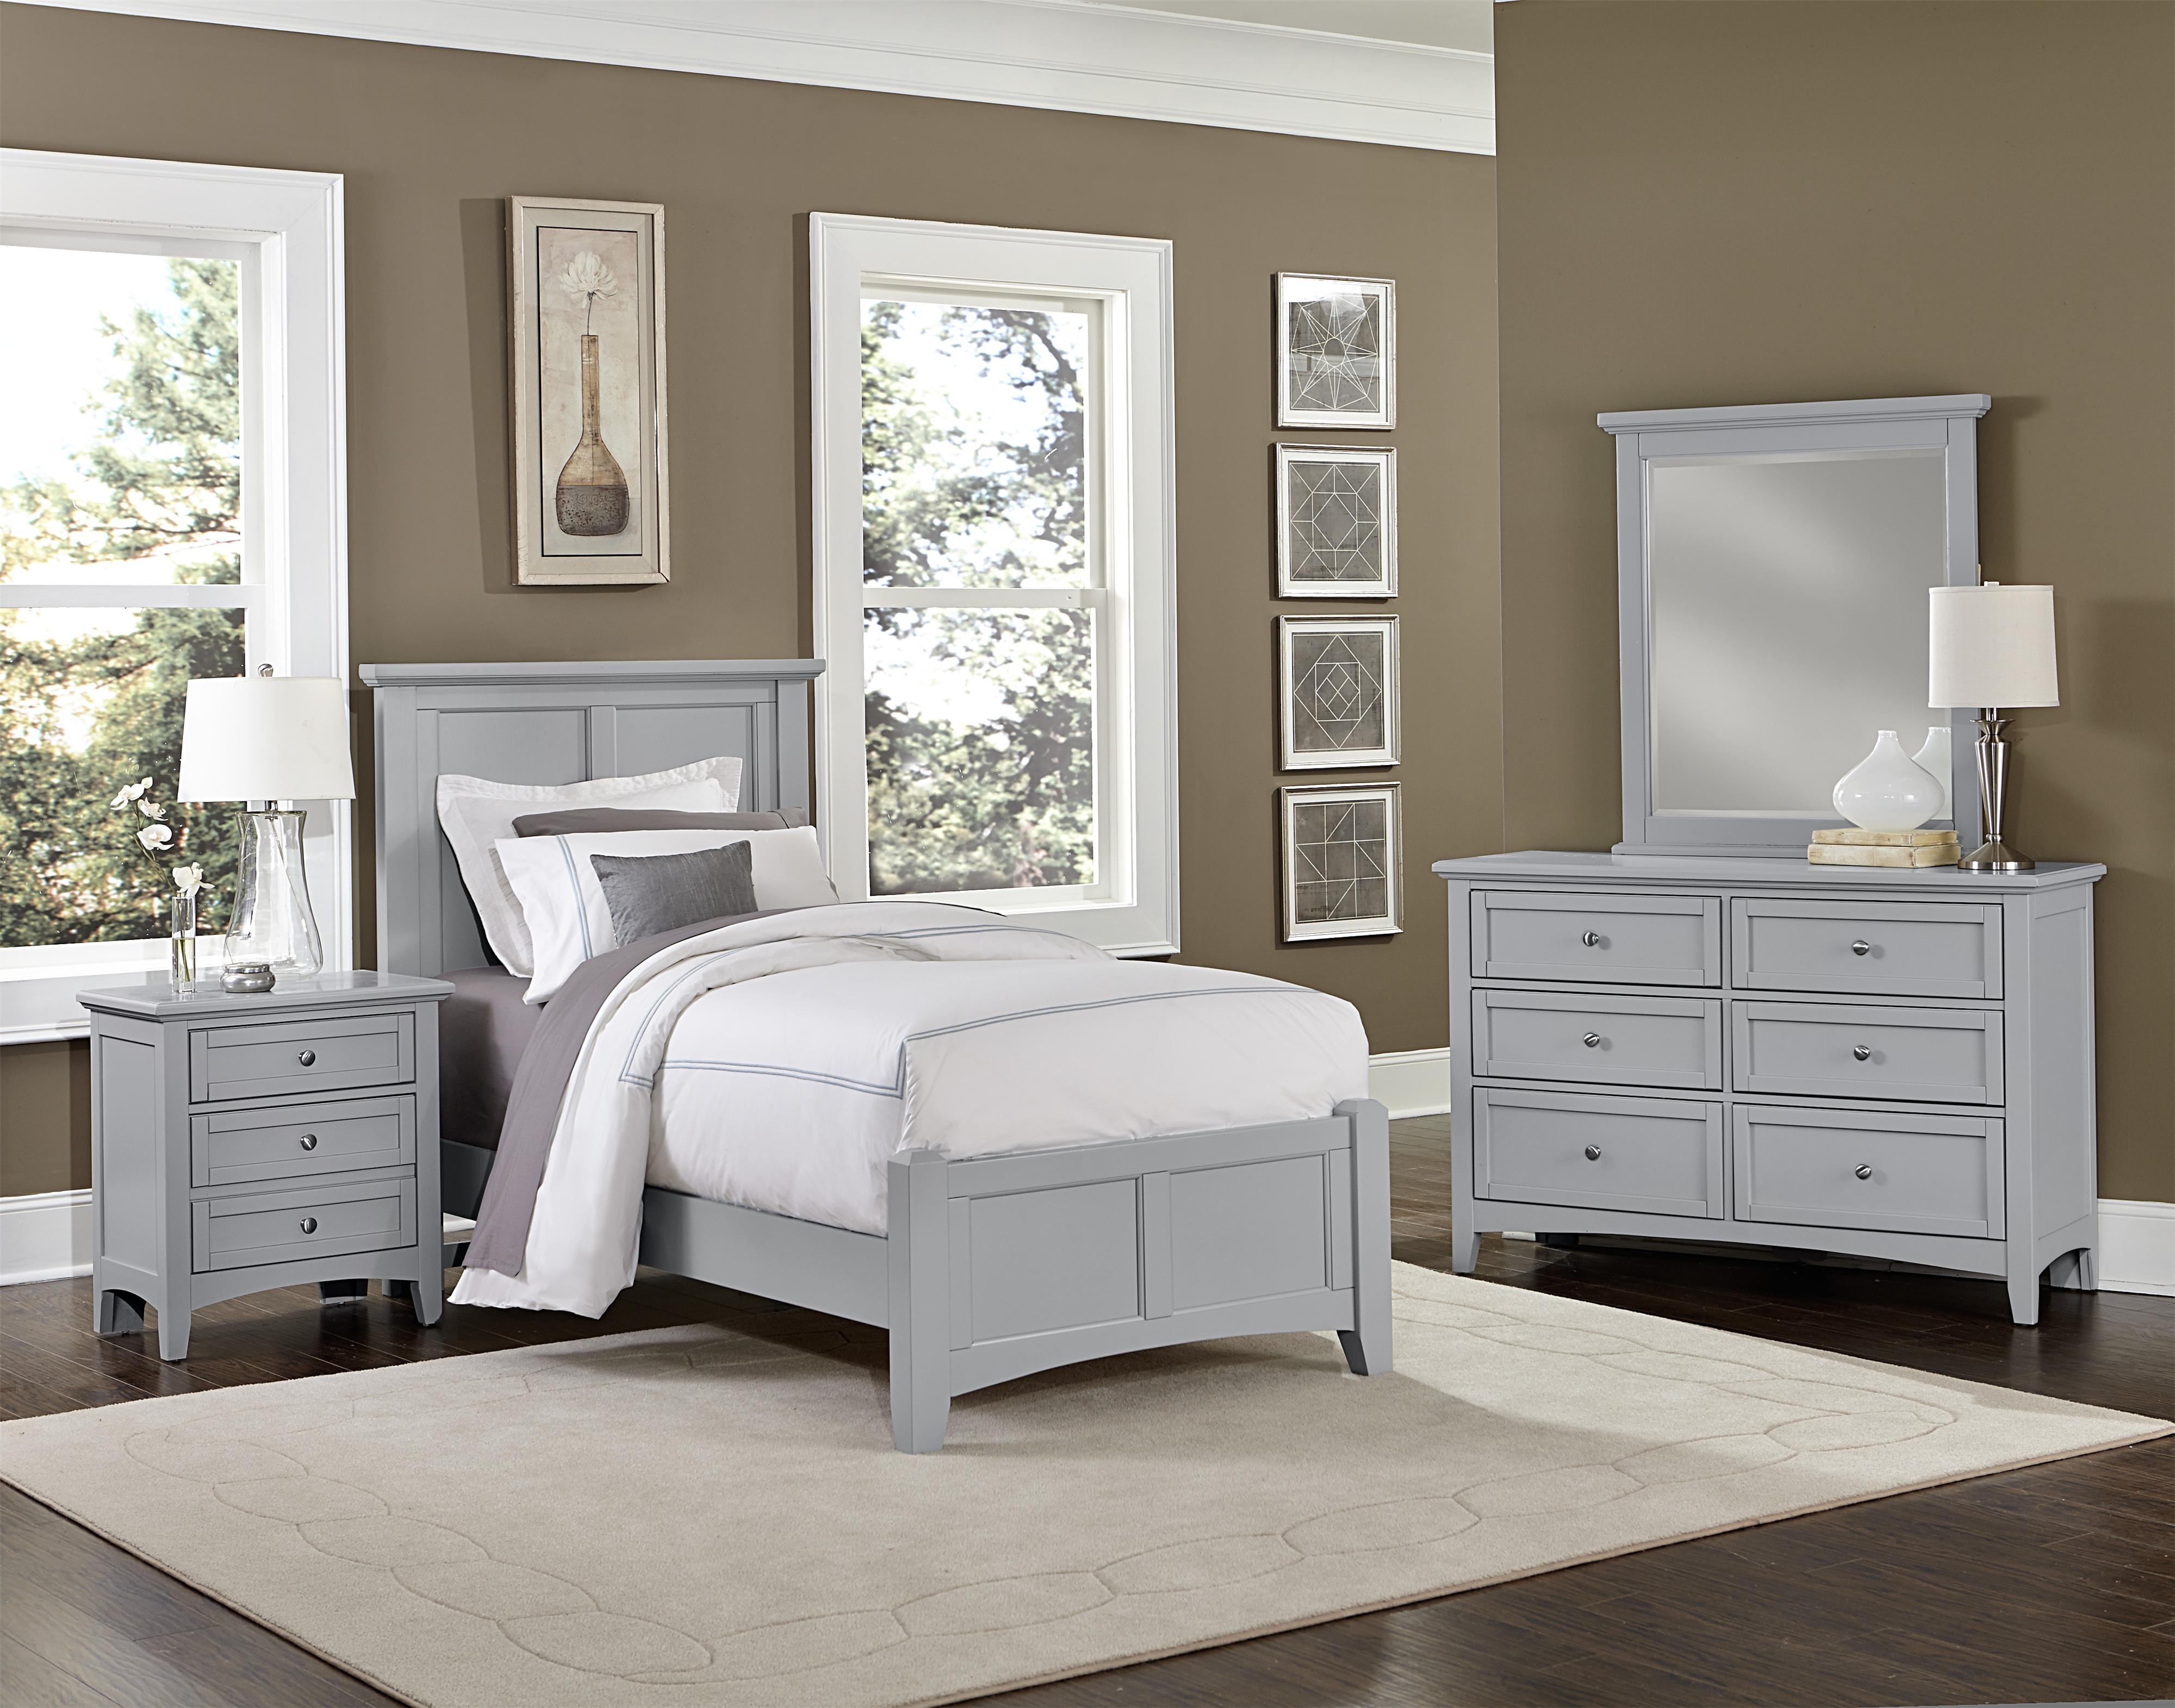 Bunkhouse Twin Bedroom Group by Vaughan-Bassett at Crowley Furniture & Mattress